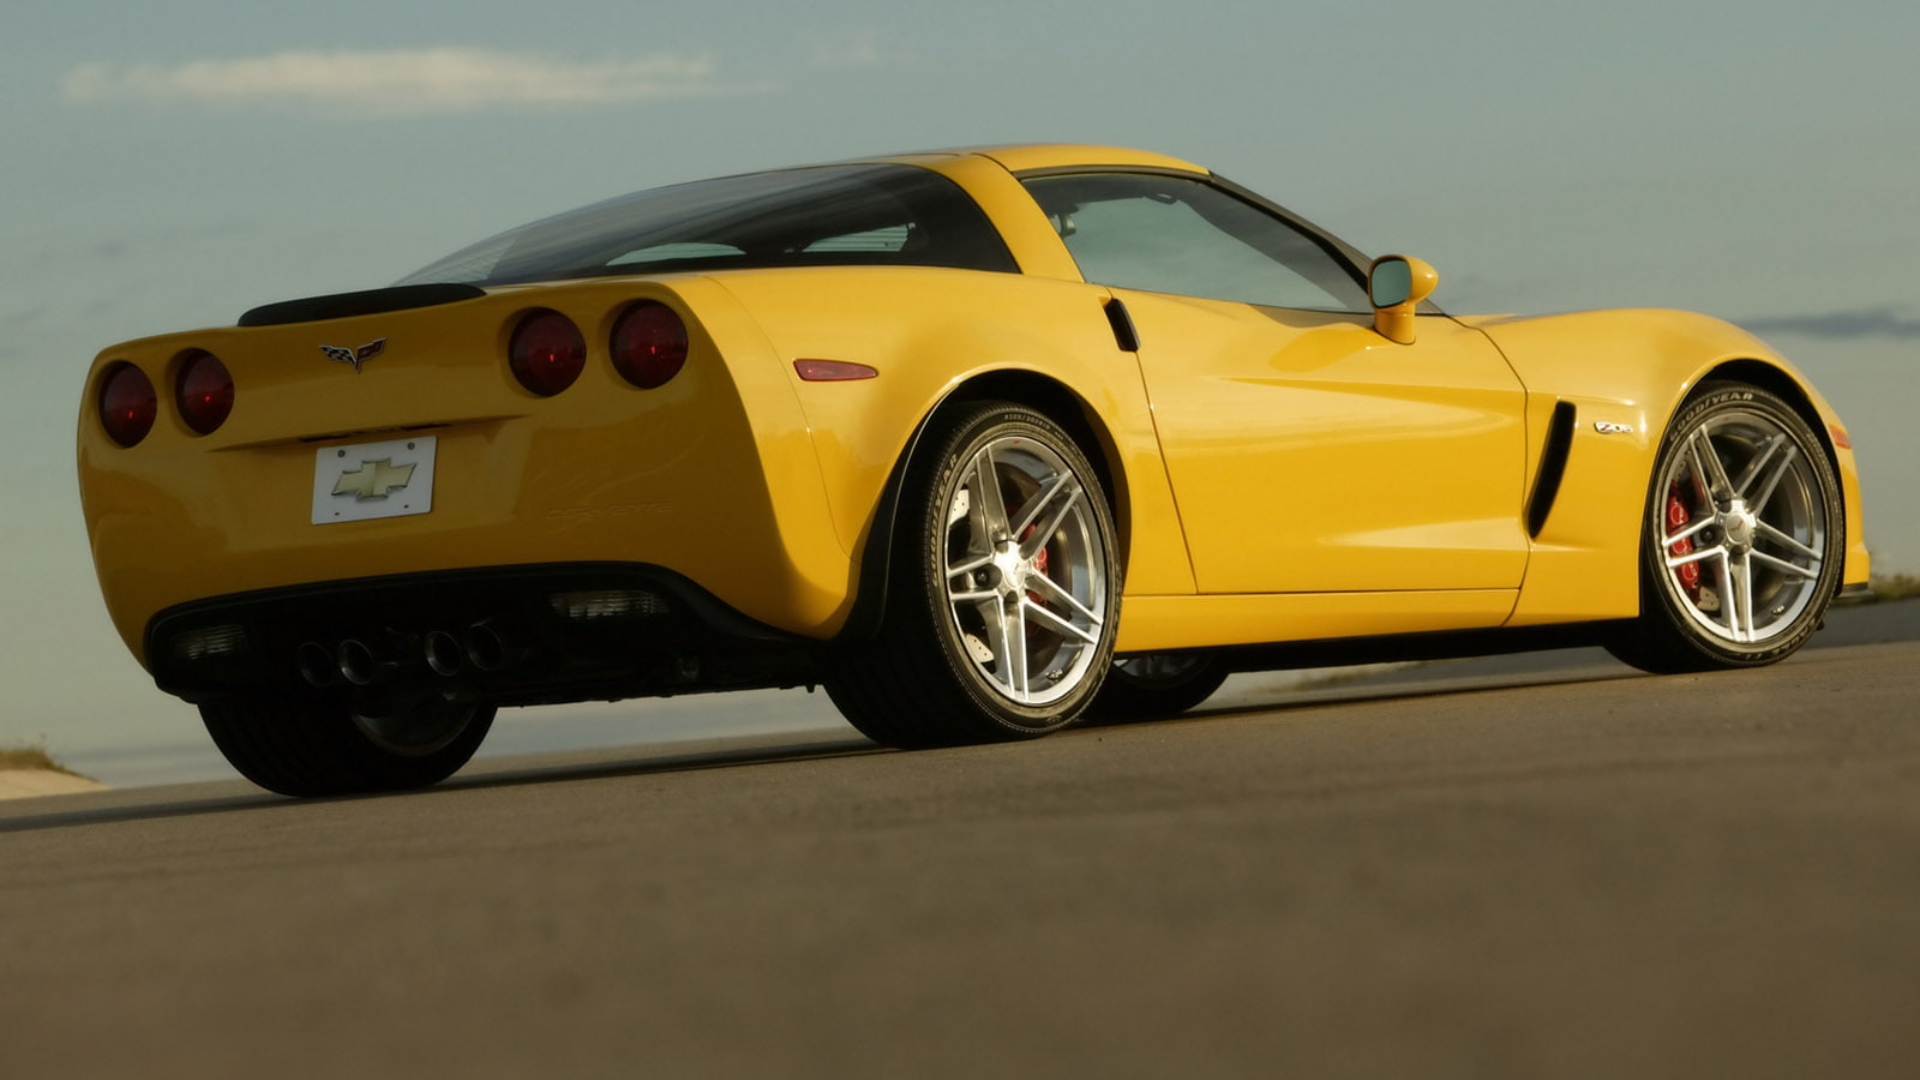 2006 Corvette Wallpapers